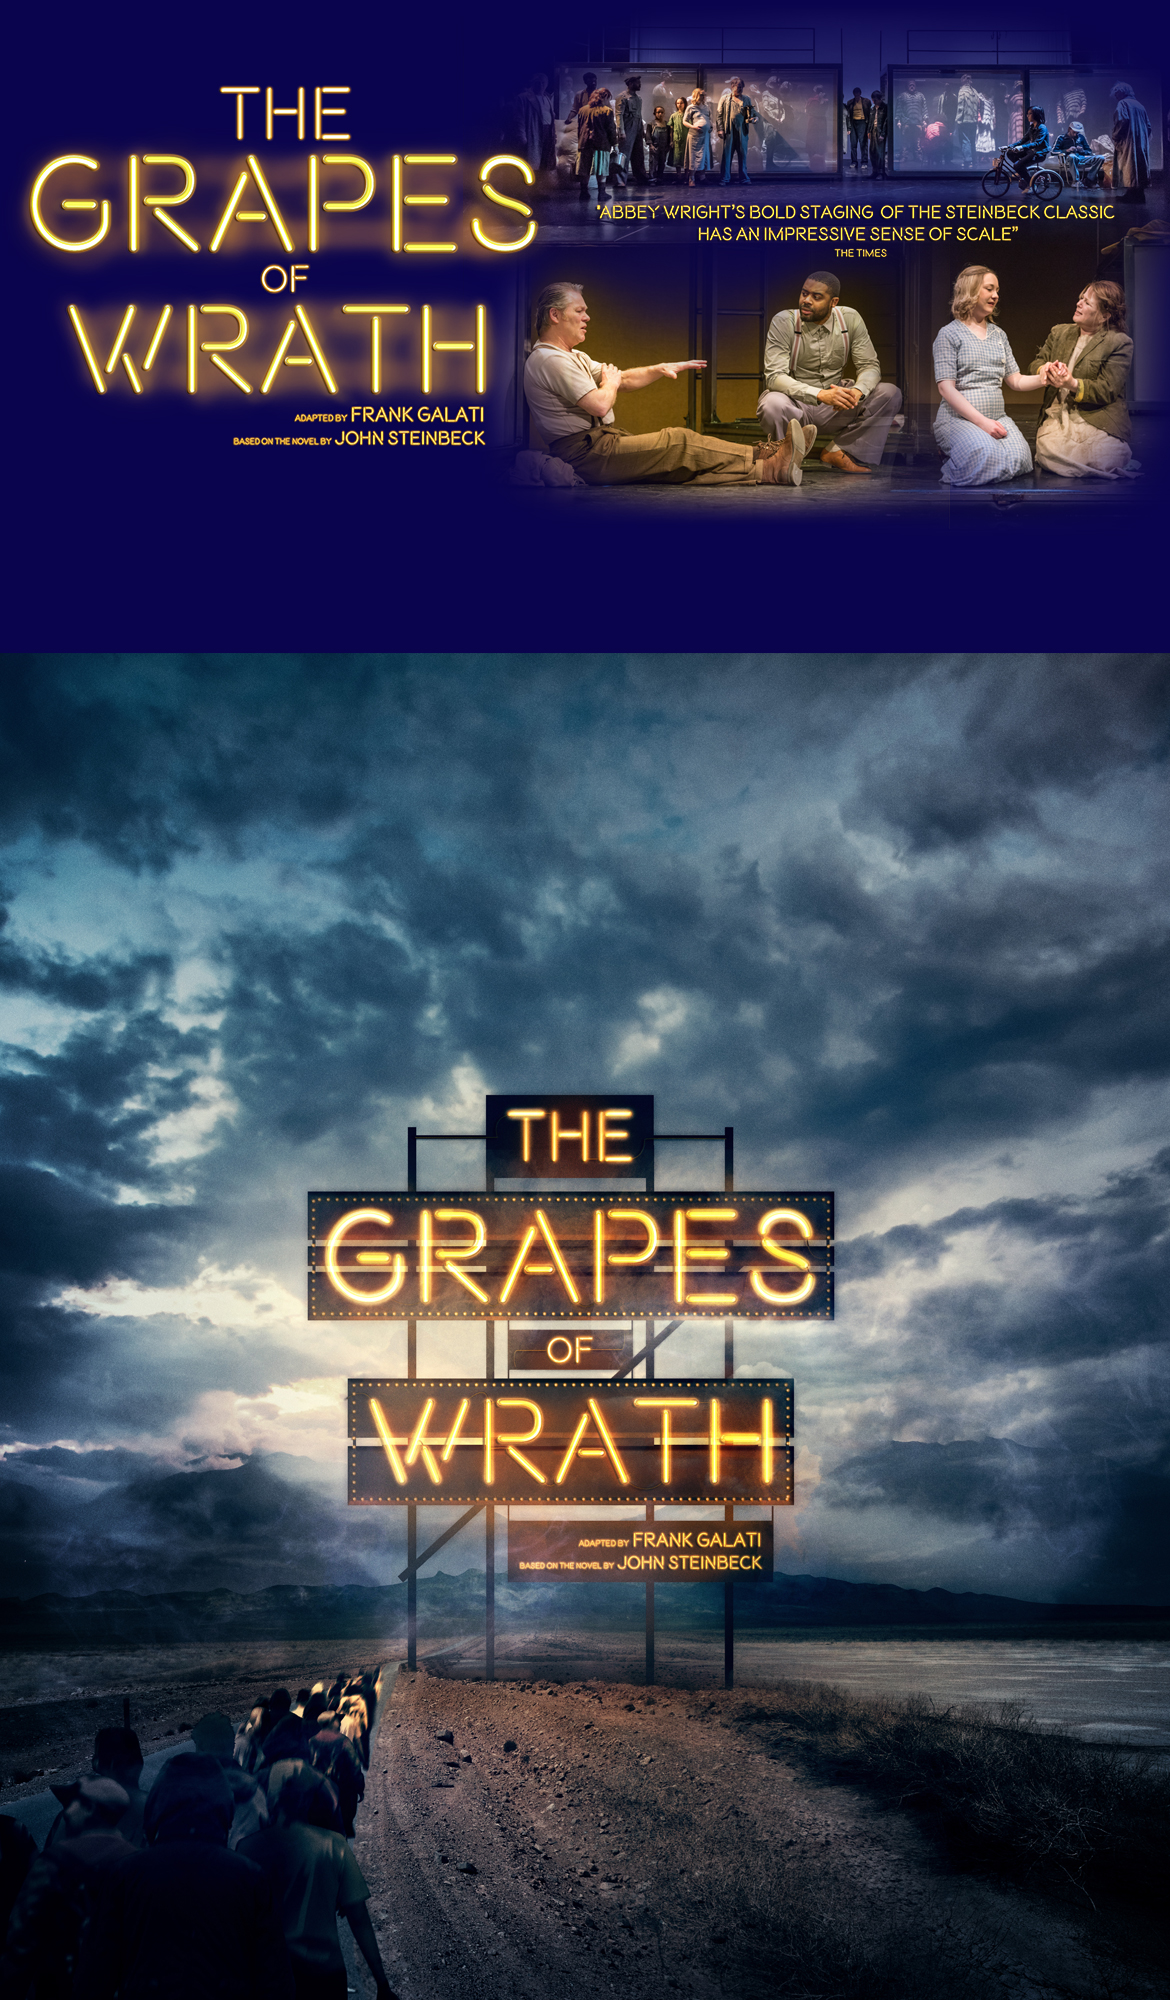 the struggle of survival in the grapes of wrath by john steinbeck The grapes of wrath takes place during the dust bowl the constant struggle between money, hunger and survival john steinbeck allows the reader to taste.